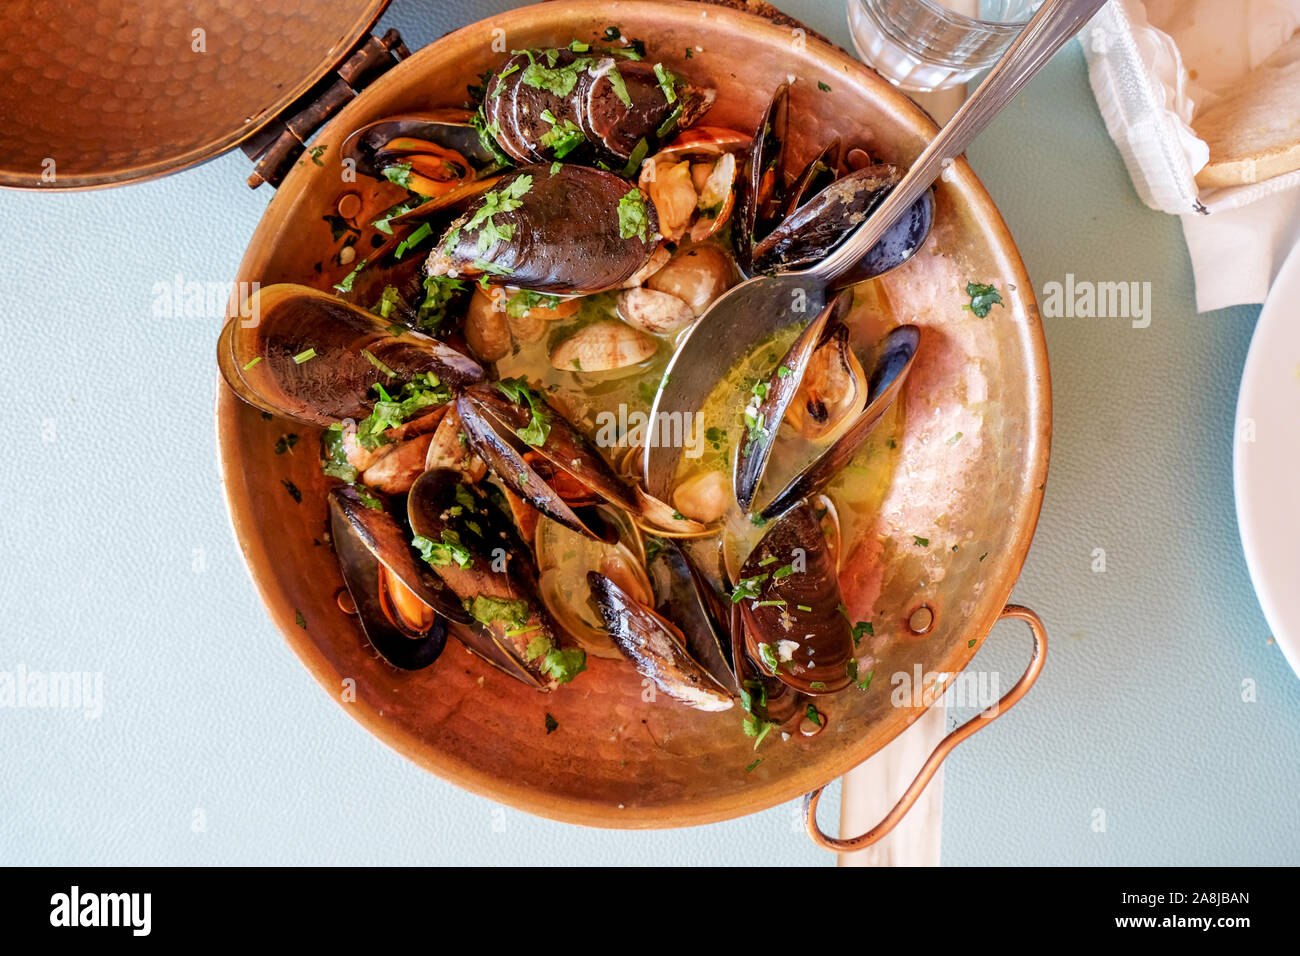 a restaurant copper serving bowl full of mussels and clams cooked in white wine sauce with garlic and parsley a traditional Portuguese dish called Ame Stock Photo